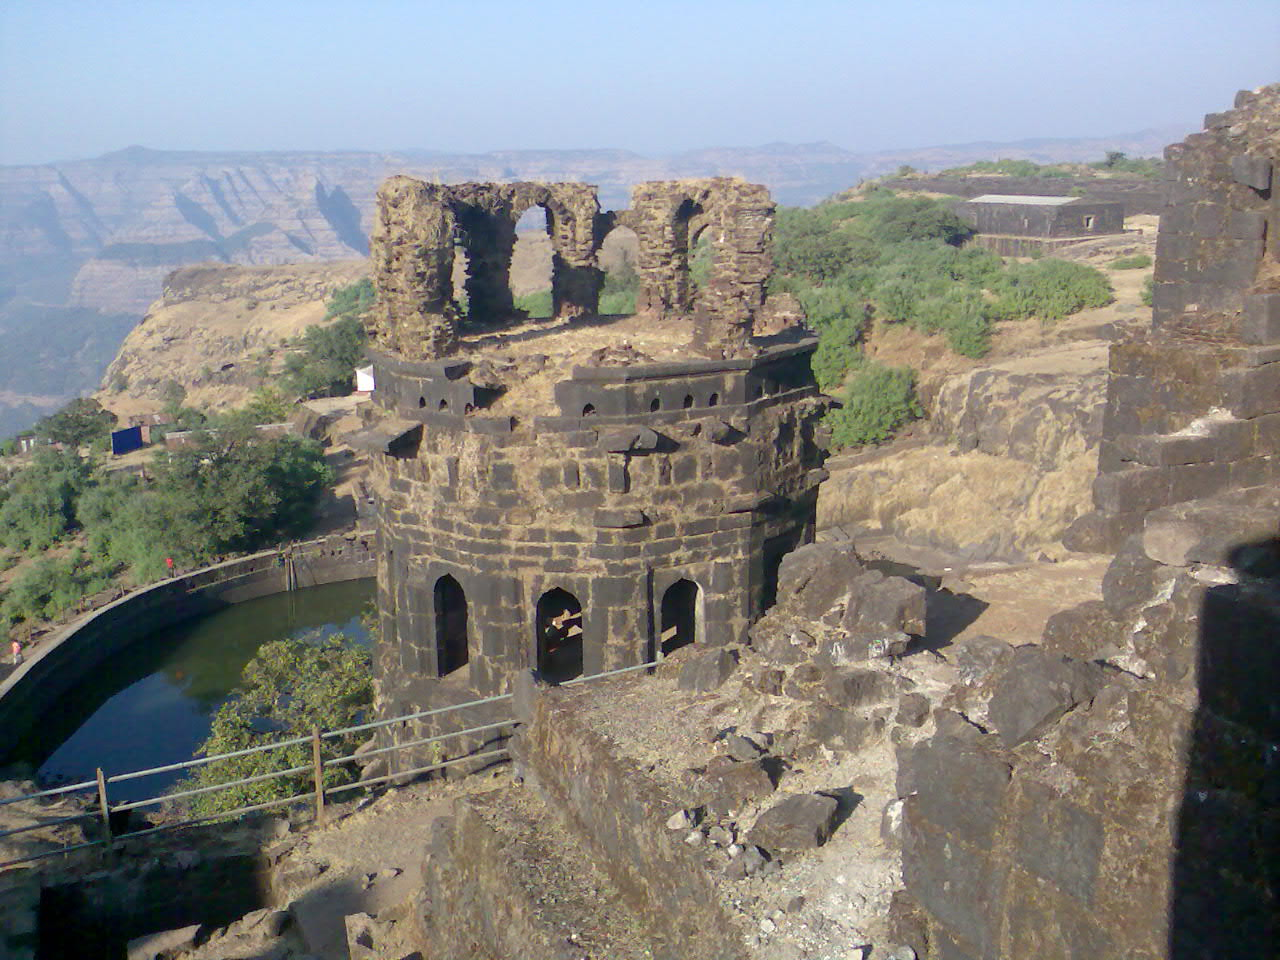 Raigad Fort-The Capital of the Maratha Empire